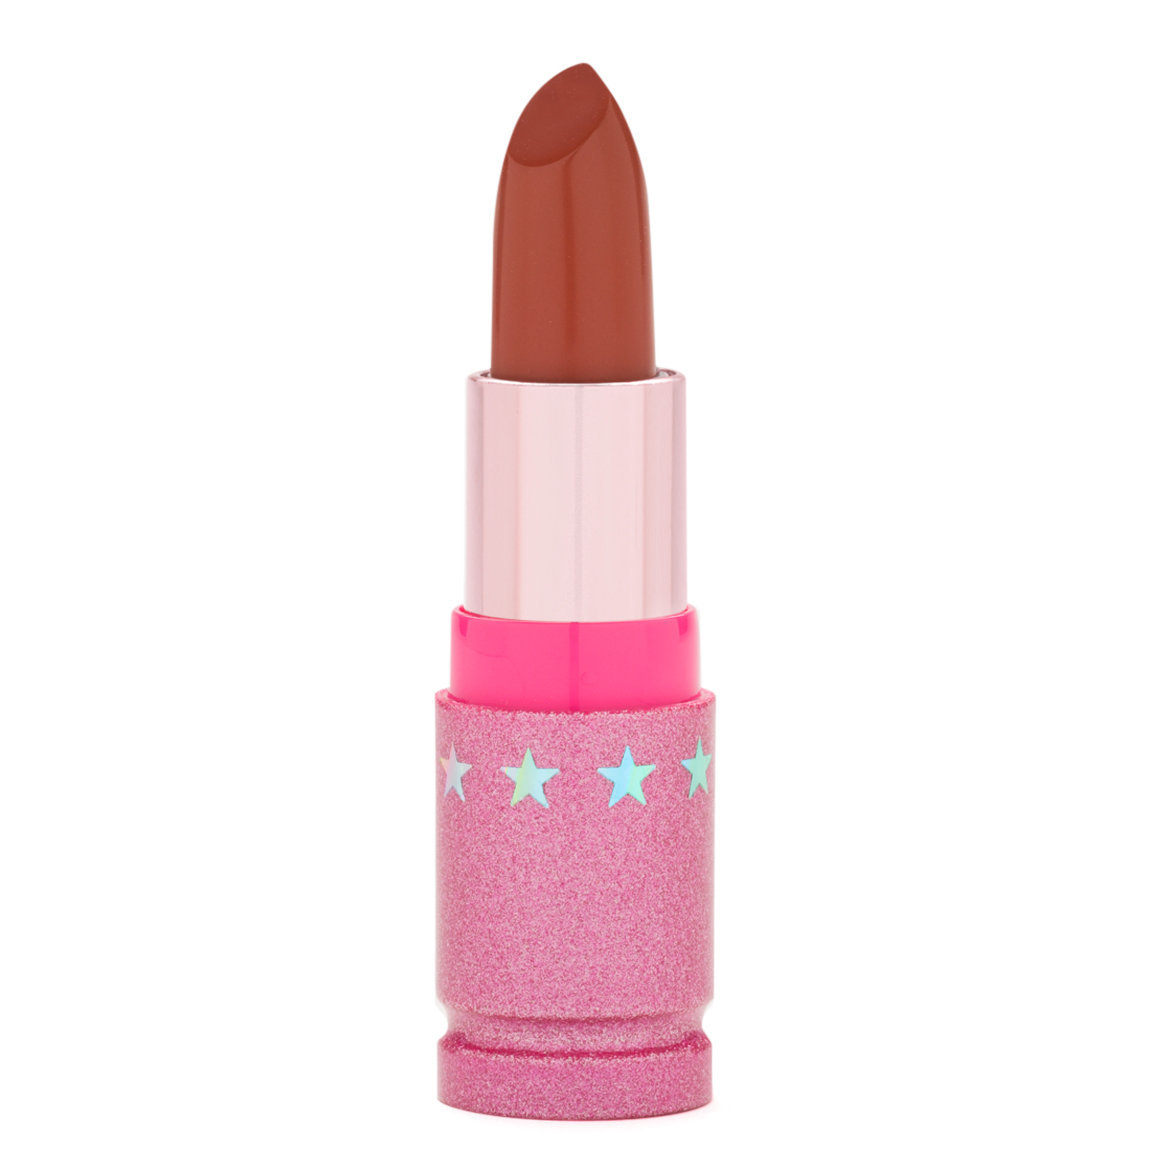 Jeffree Star Cosmetics Lip Ammunition Allegedly